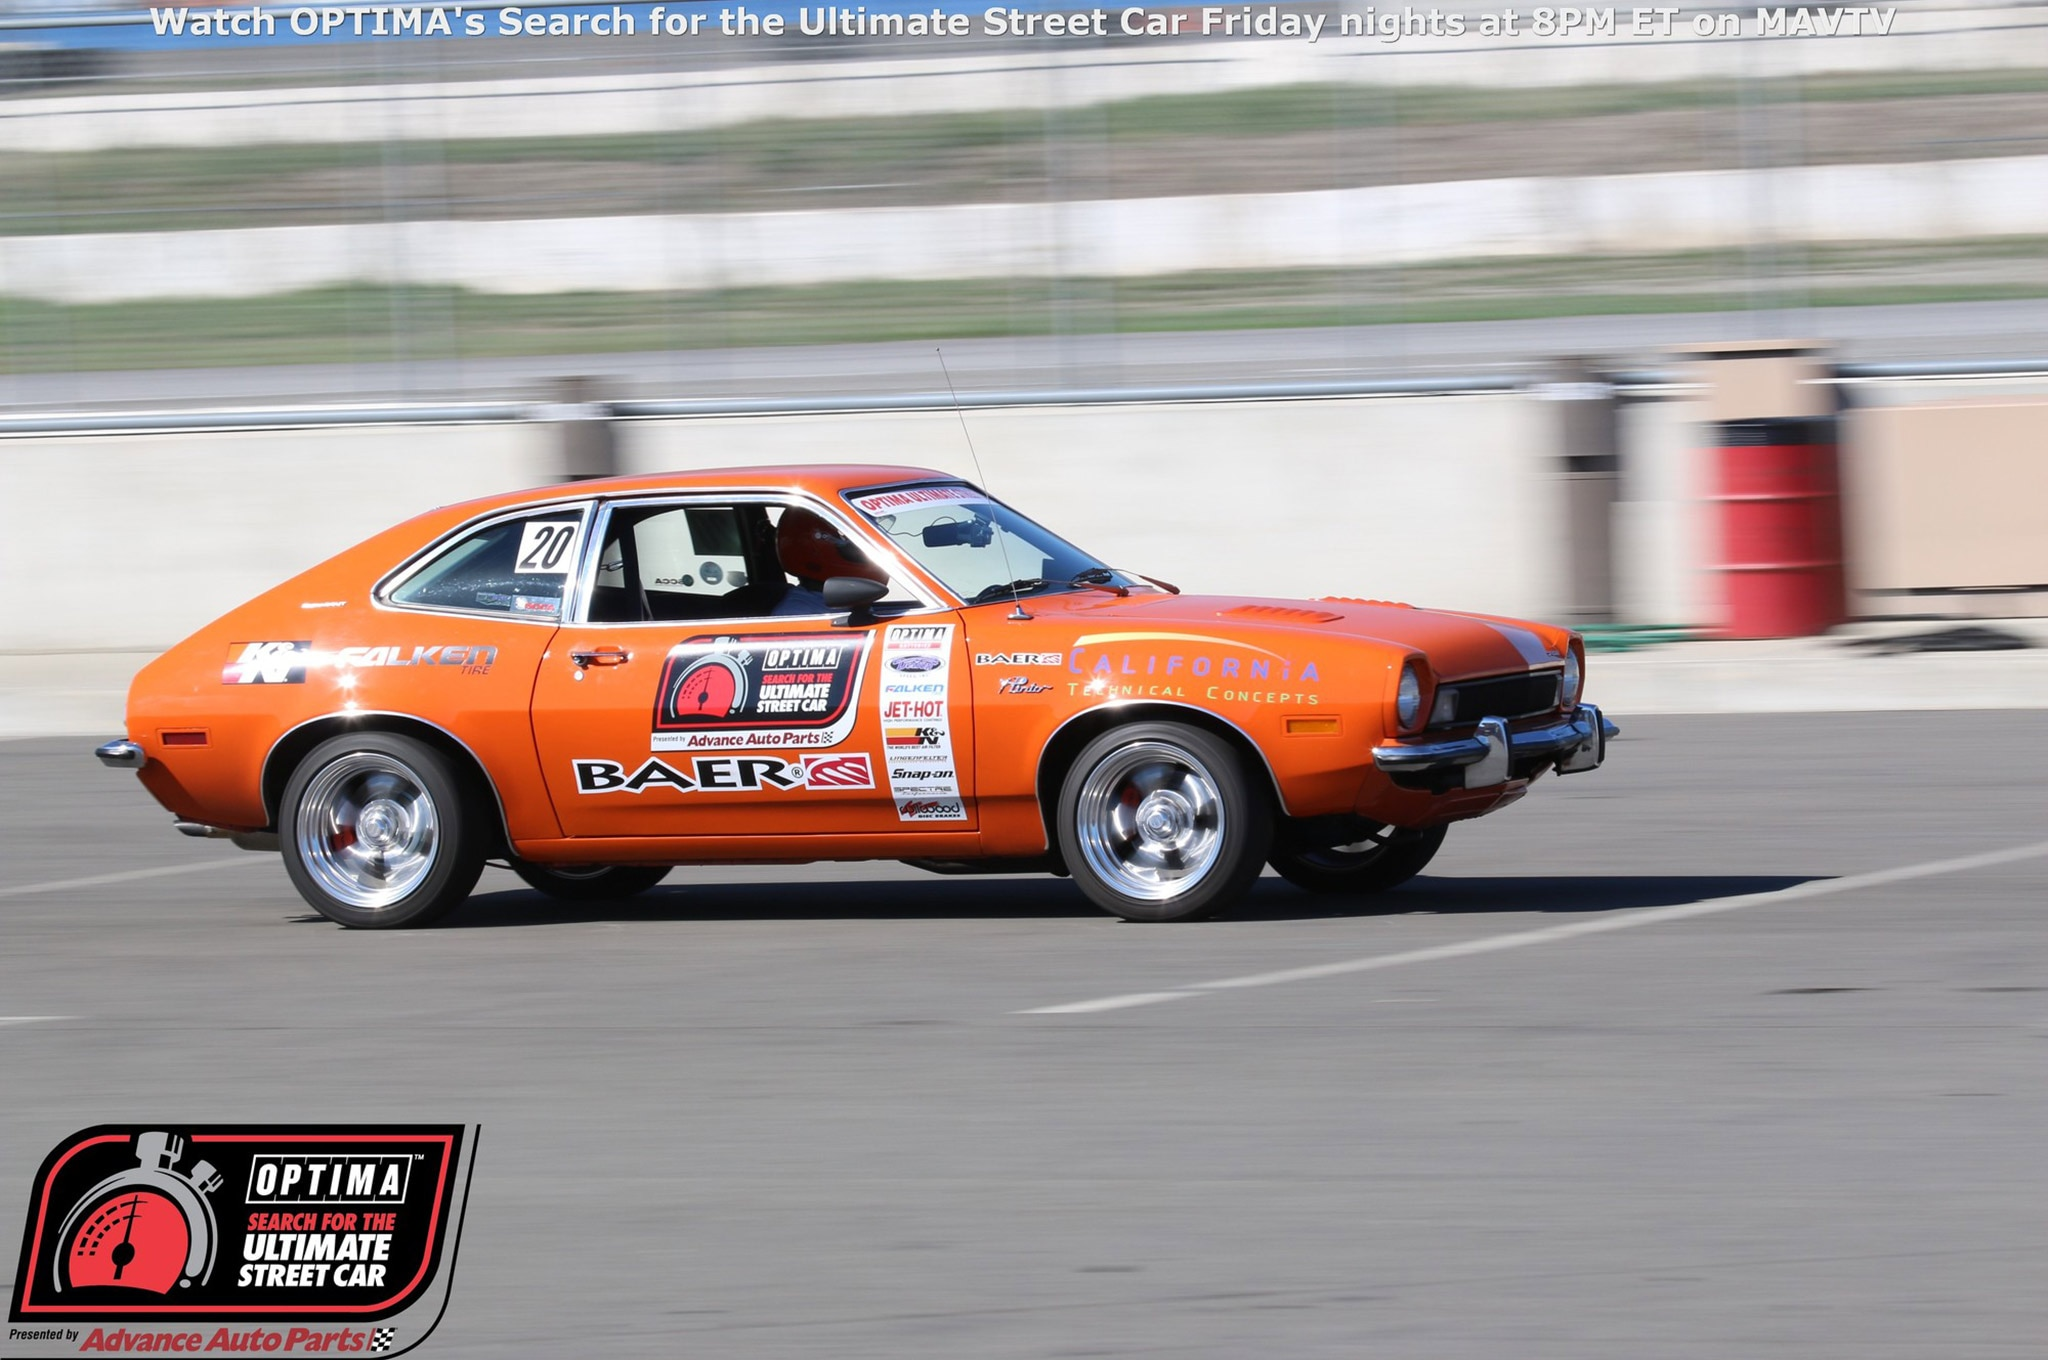 Joe Escobar 1974 Ford Pinto Drive OPTIMA Fontana 2015 823